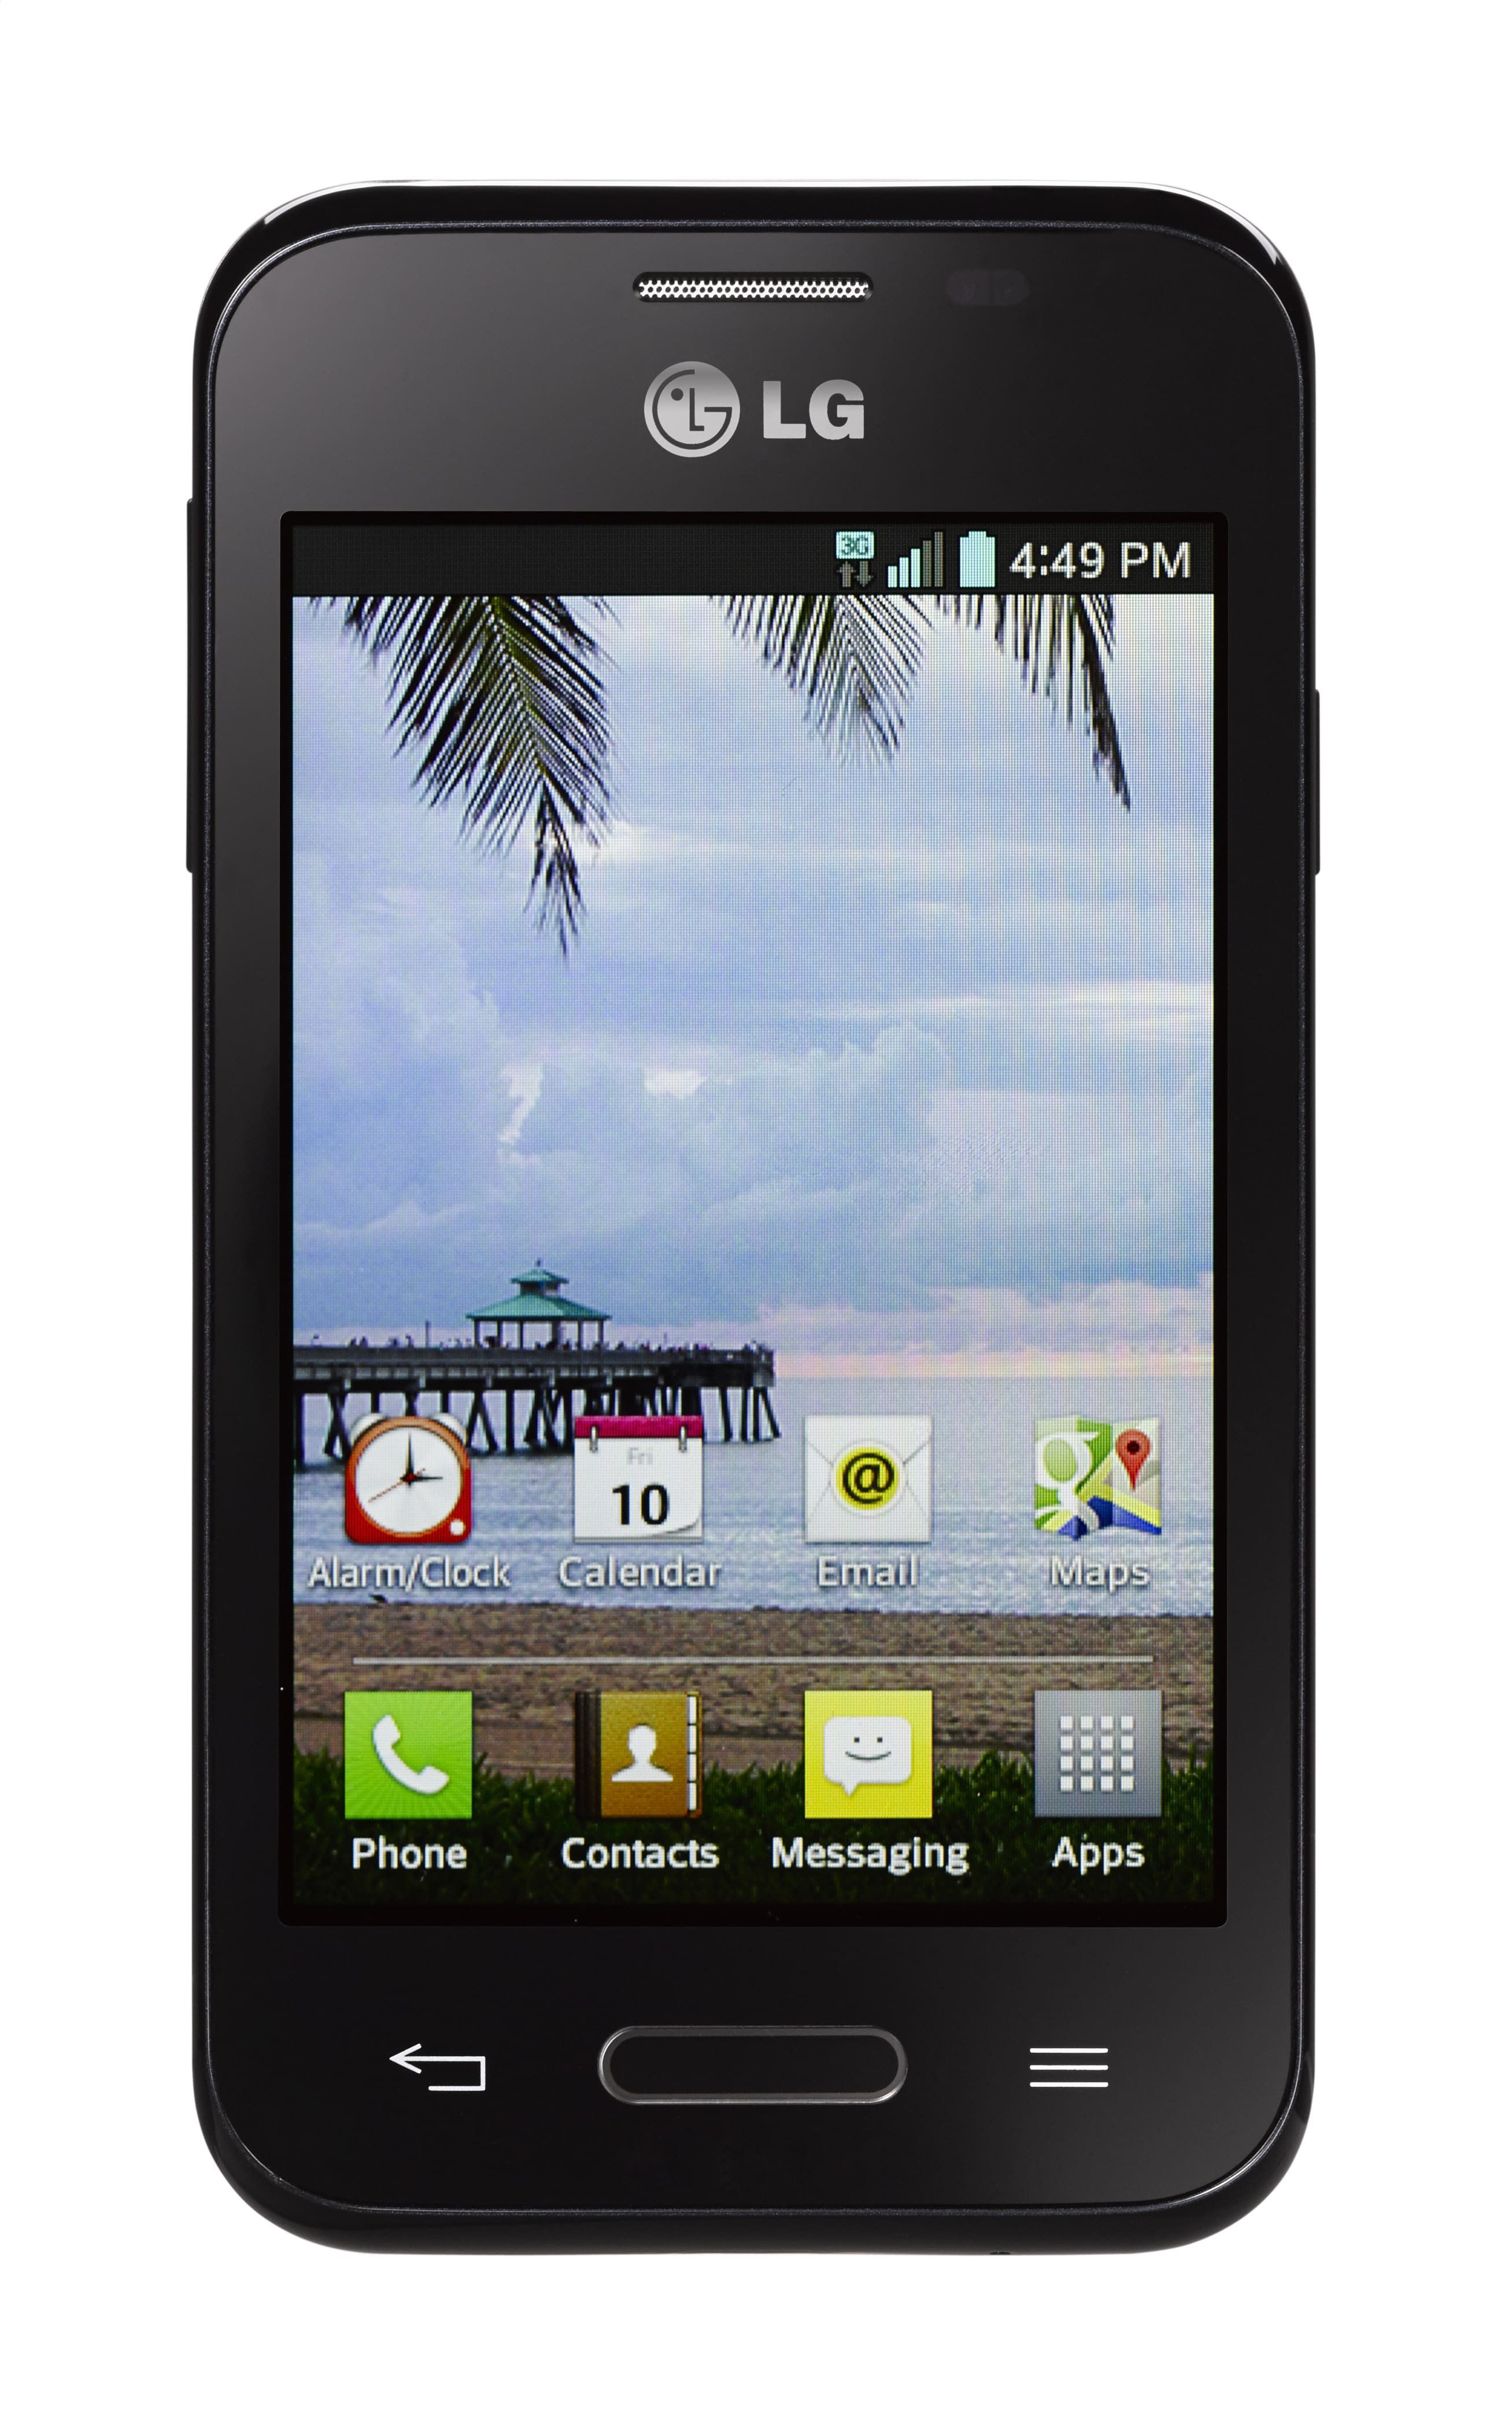 TracFone refurbished LG Optimus Fuel is back at $9.99, still free 3 day shipping on orders over $19.99